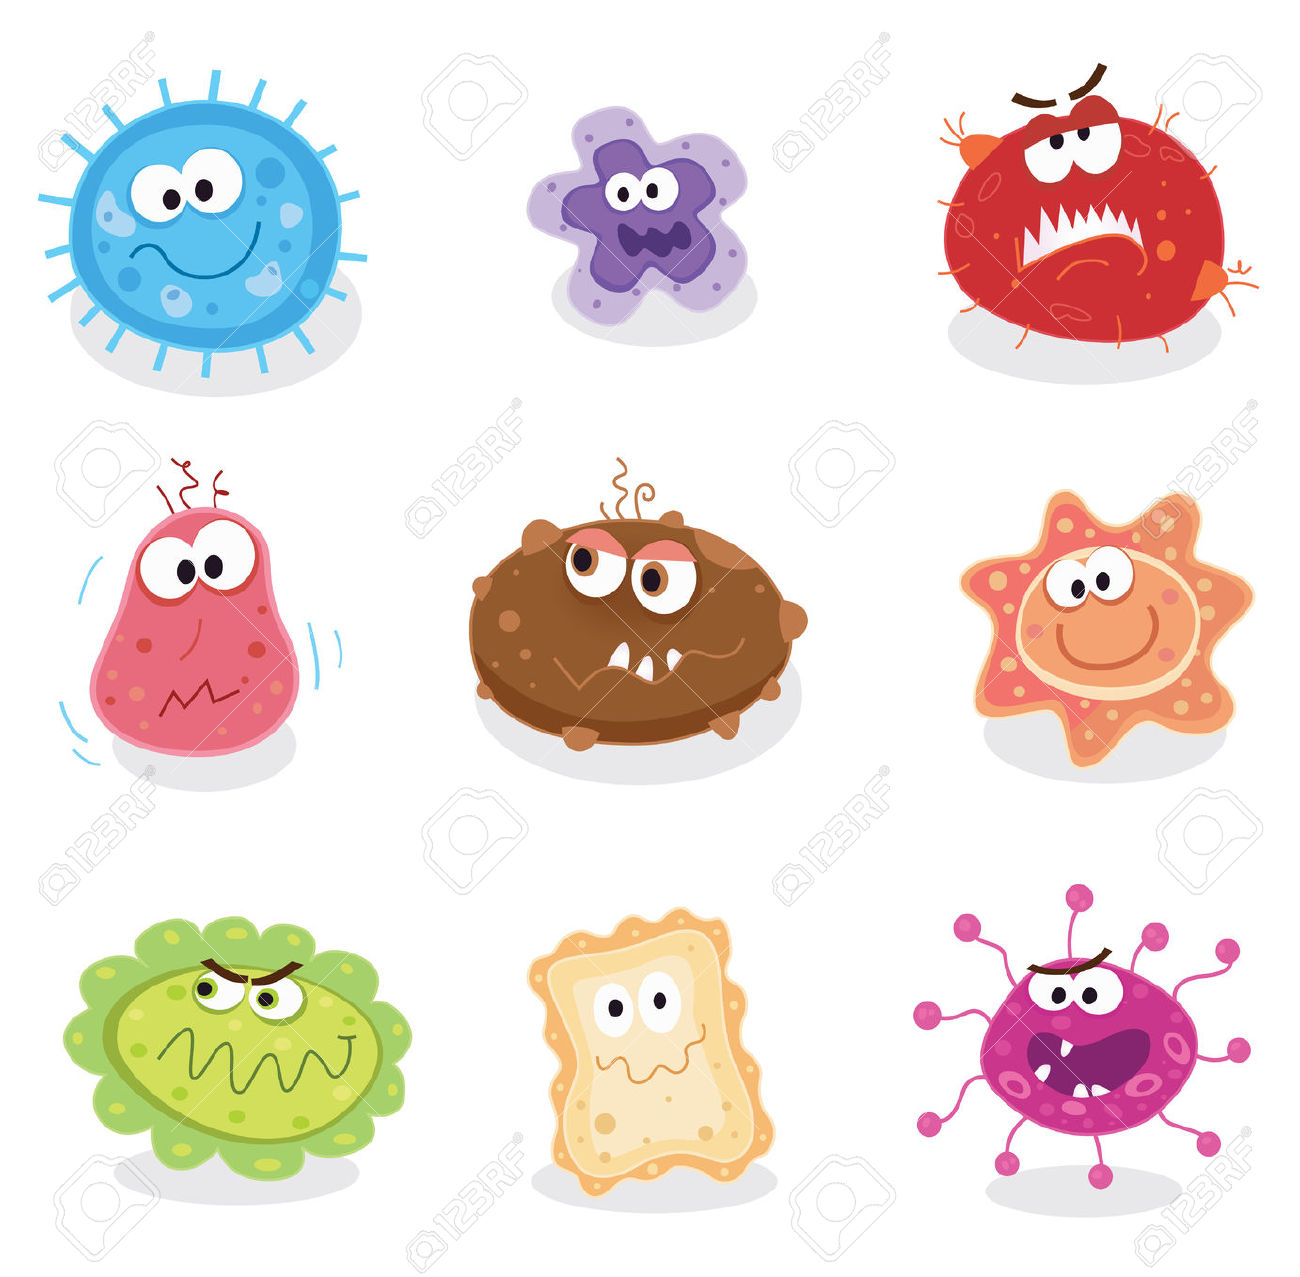 Virus and germs clipart clipart free stock virus: Bugs and germs I. Swine | Clipart Panda - Free ... clipart free stock